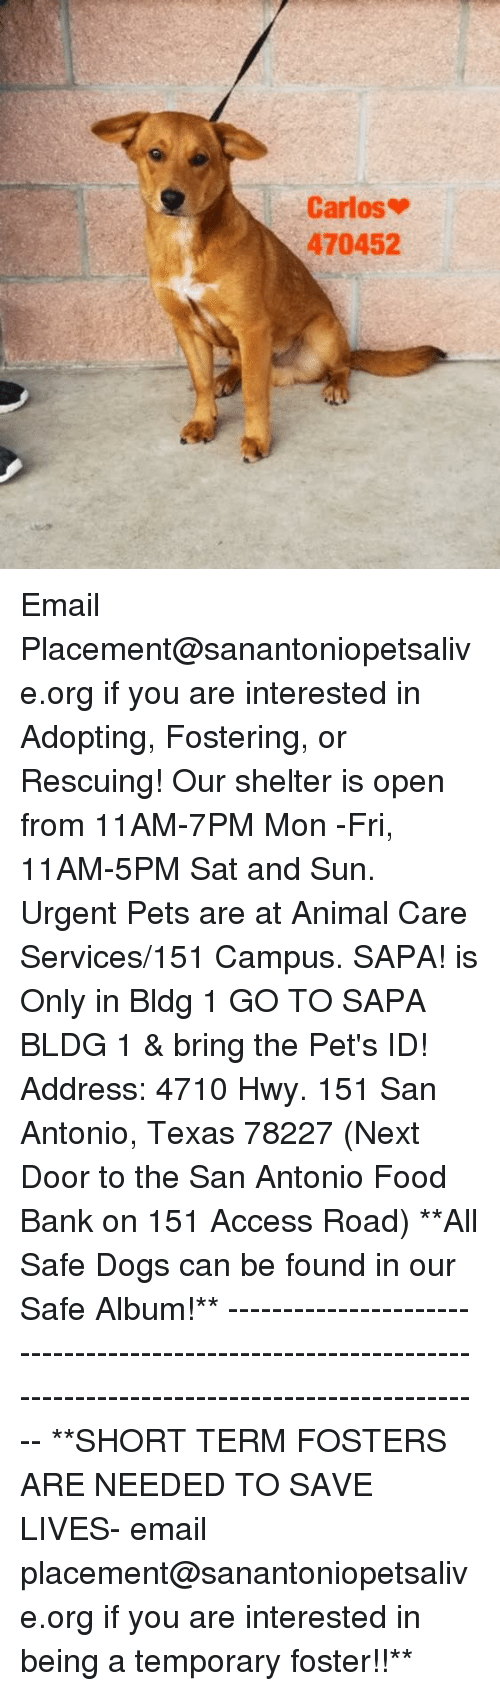 Dogs, Food, and Memes: Carlos  470452 Email Placement@sanantoniopetsalive.org if you are interested in Adopting, Fostering, or Rescuing!  Our shelter is open from 11AM-7PM Mon -Fri, 11AM-5PM Sat and Sun.  Urgent Pets are at Animal Care Services/151 Campus. SAPA! is Only in Bldg 1 GO TO SAPA BLDG 1 & bring the Pet's ID! Address: 4710 Hwy. 151 San Antonio, Texas 78227 (Next Door to the San Antonio Food Bank on 151 Access Road)  **All Safe Dogs can be found in our Safe Album!** ---------------------------------------------------------------------------------------------------------- **SHORT TERM FOSTERS ARE NEEDED TO SAVE LIVES- email placement@sanantoniopetsalive.org if you are interested in being a temporary foster!!**